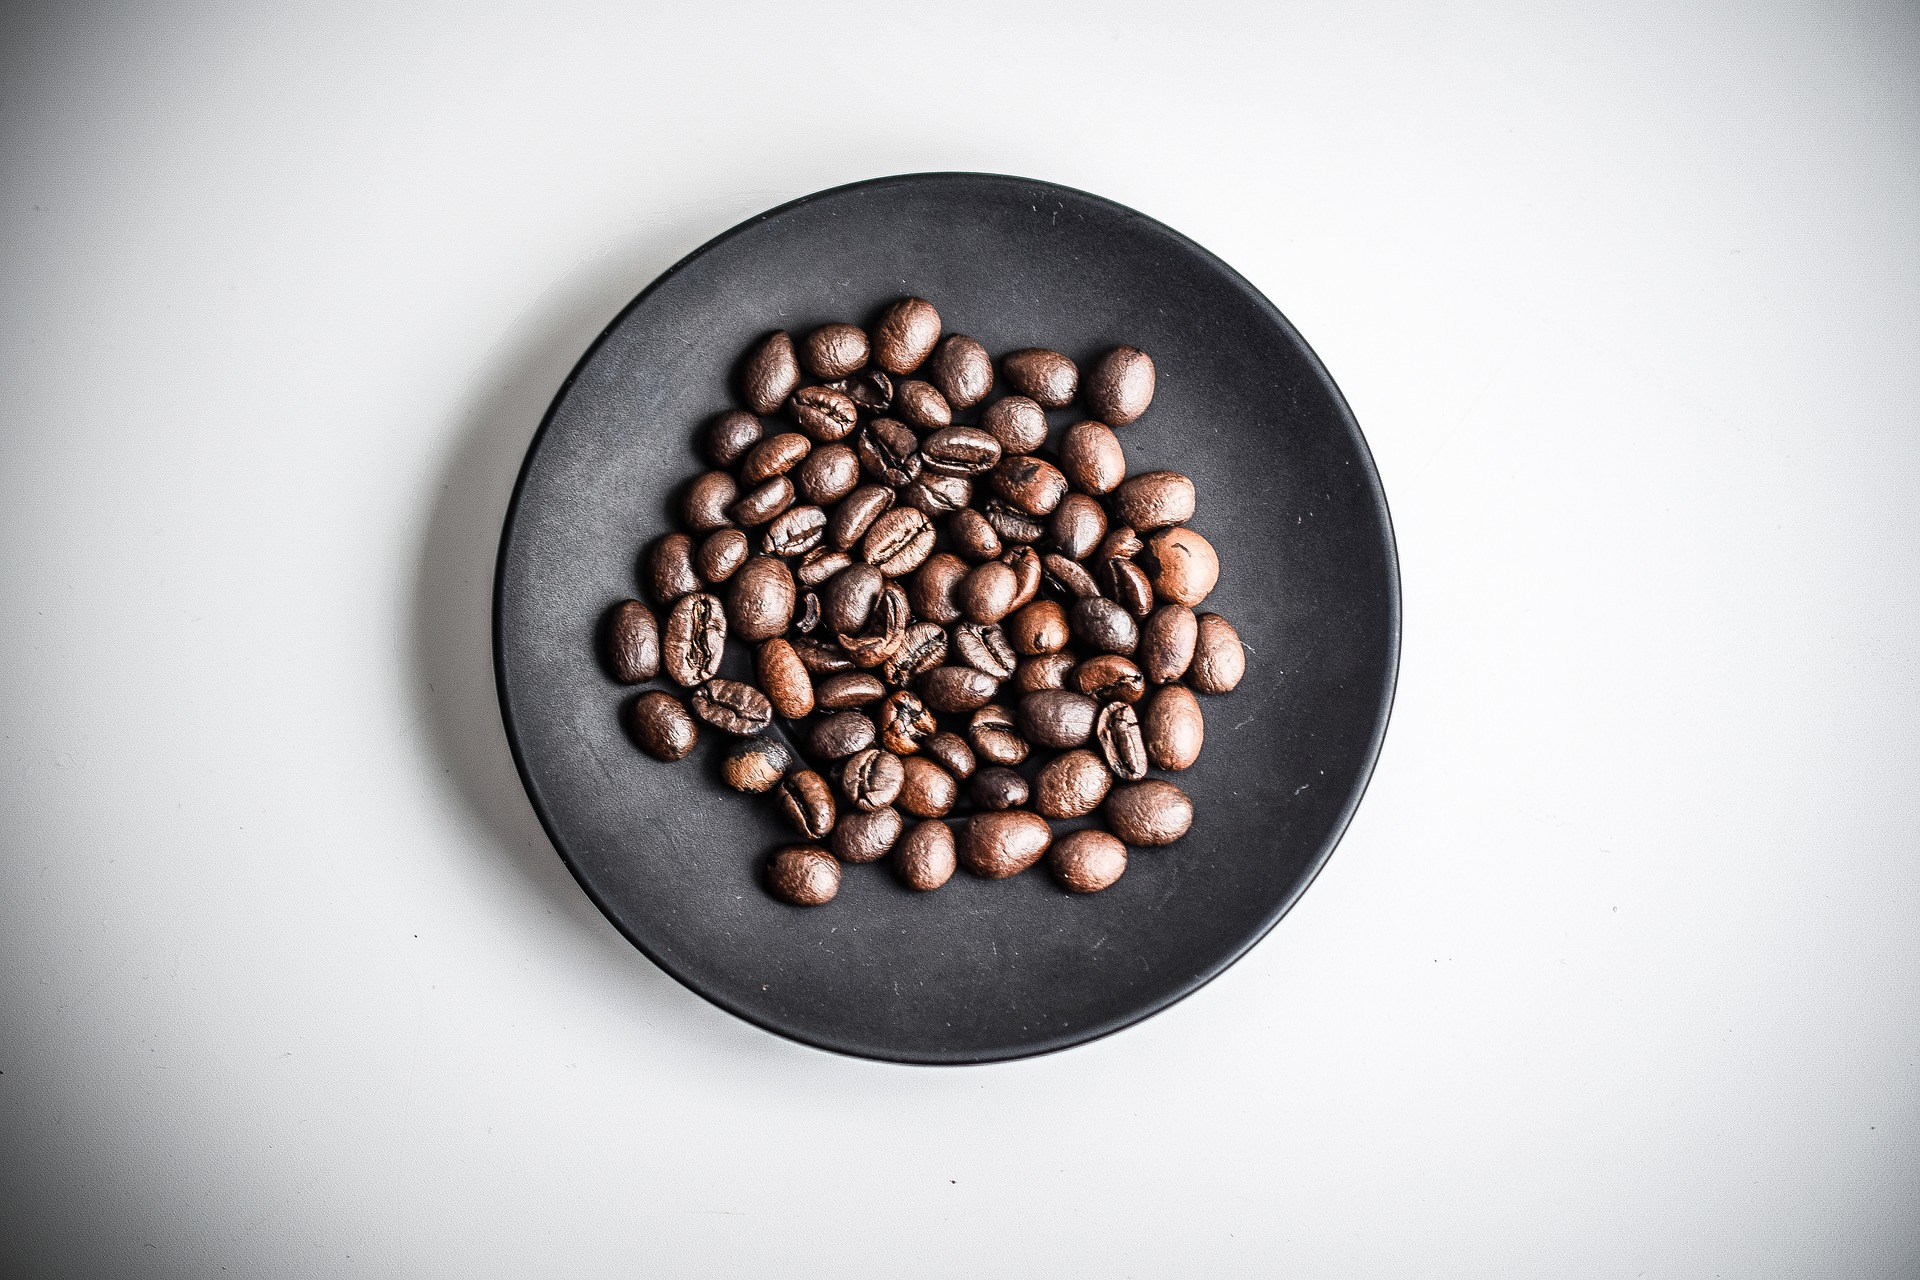 Coffee Beans on a plate